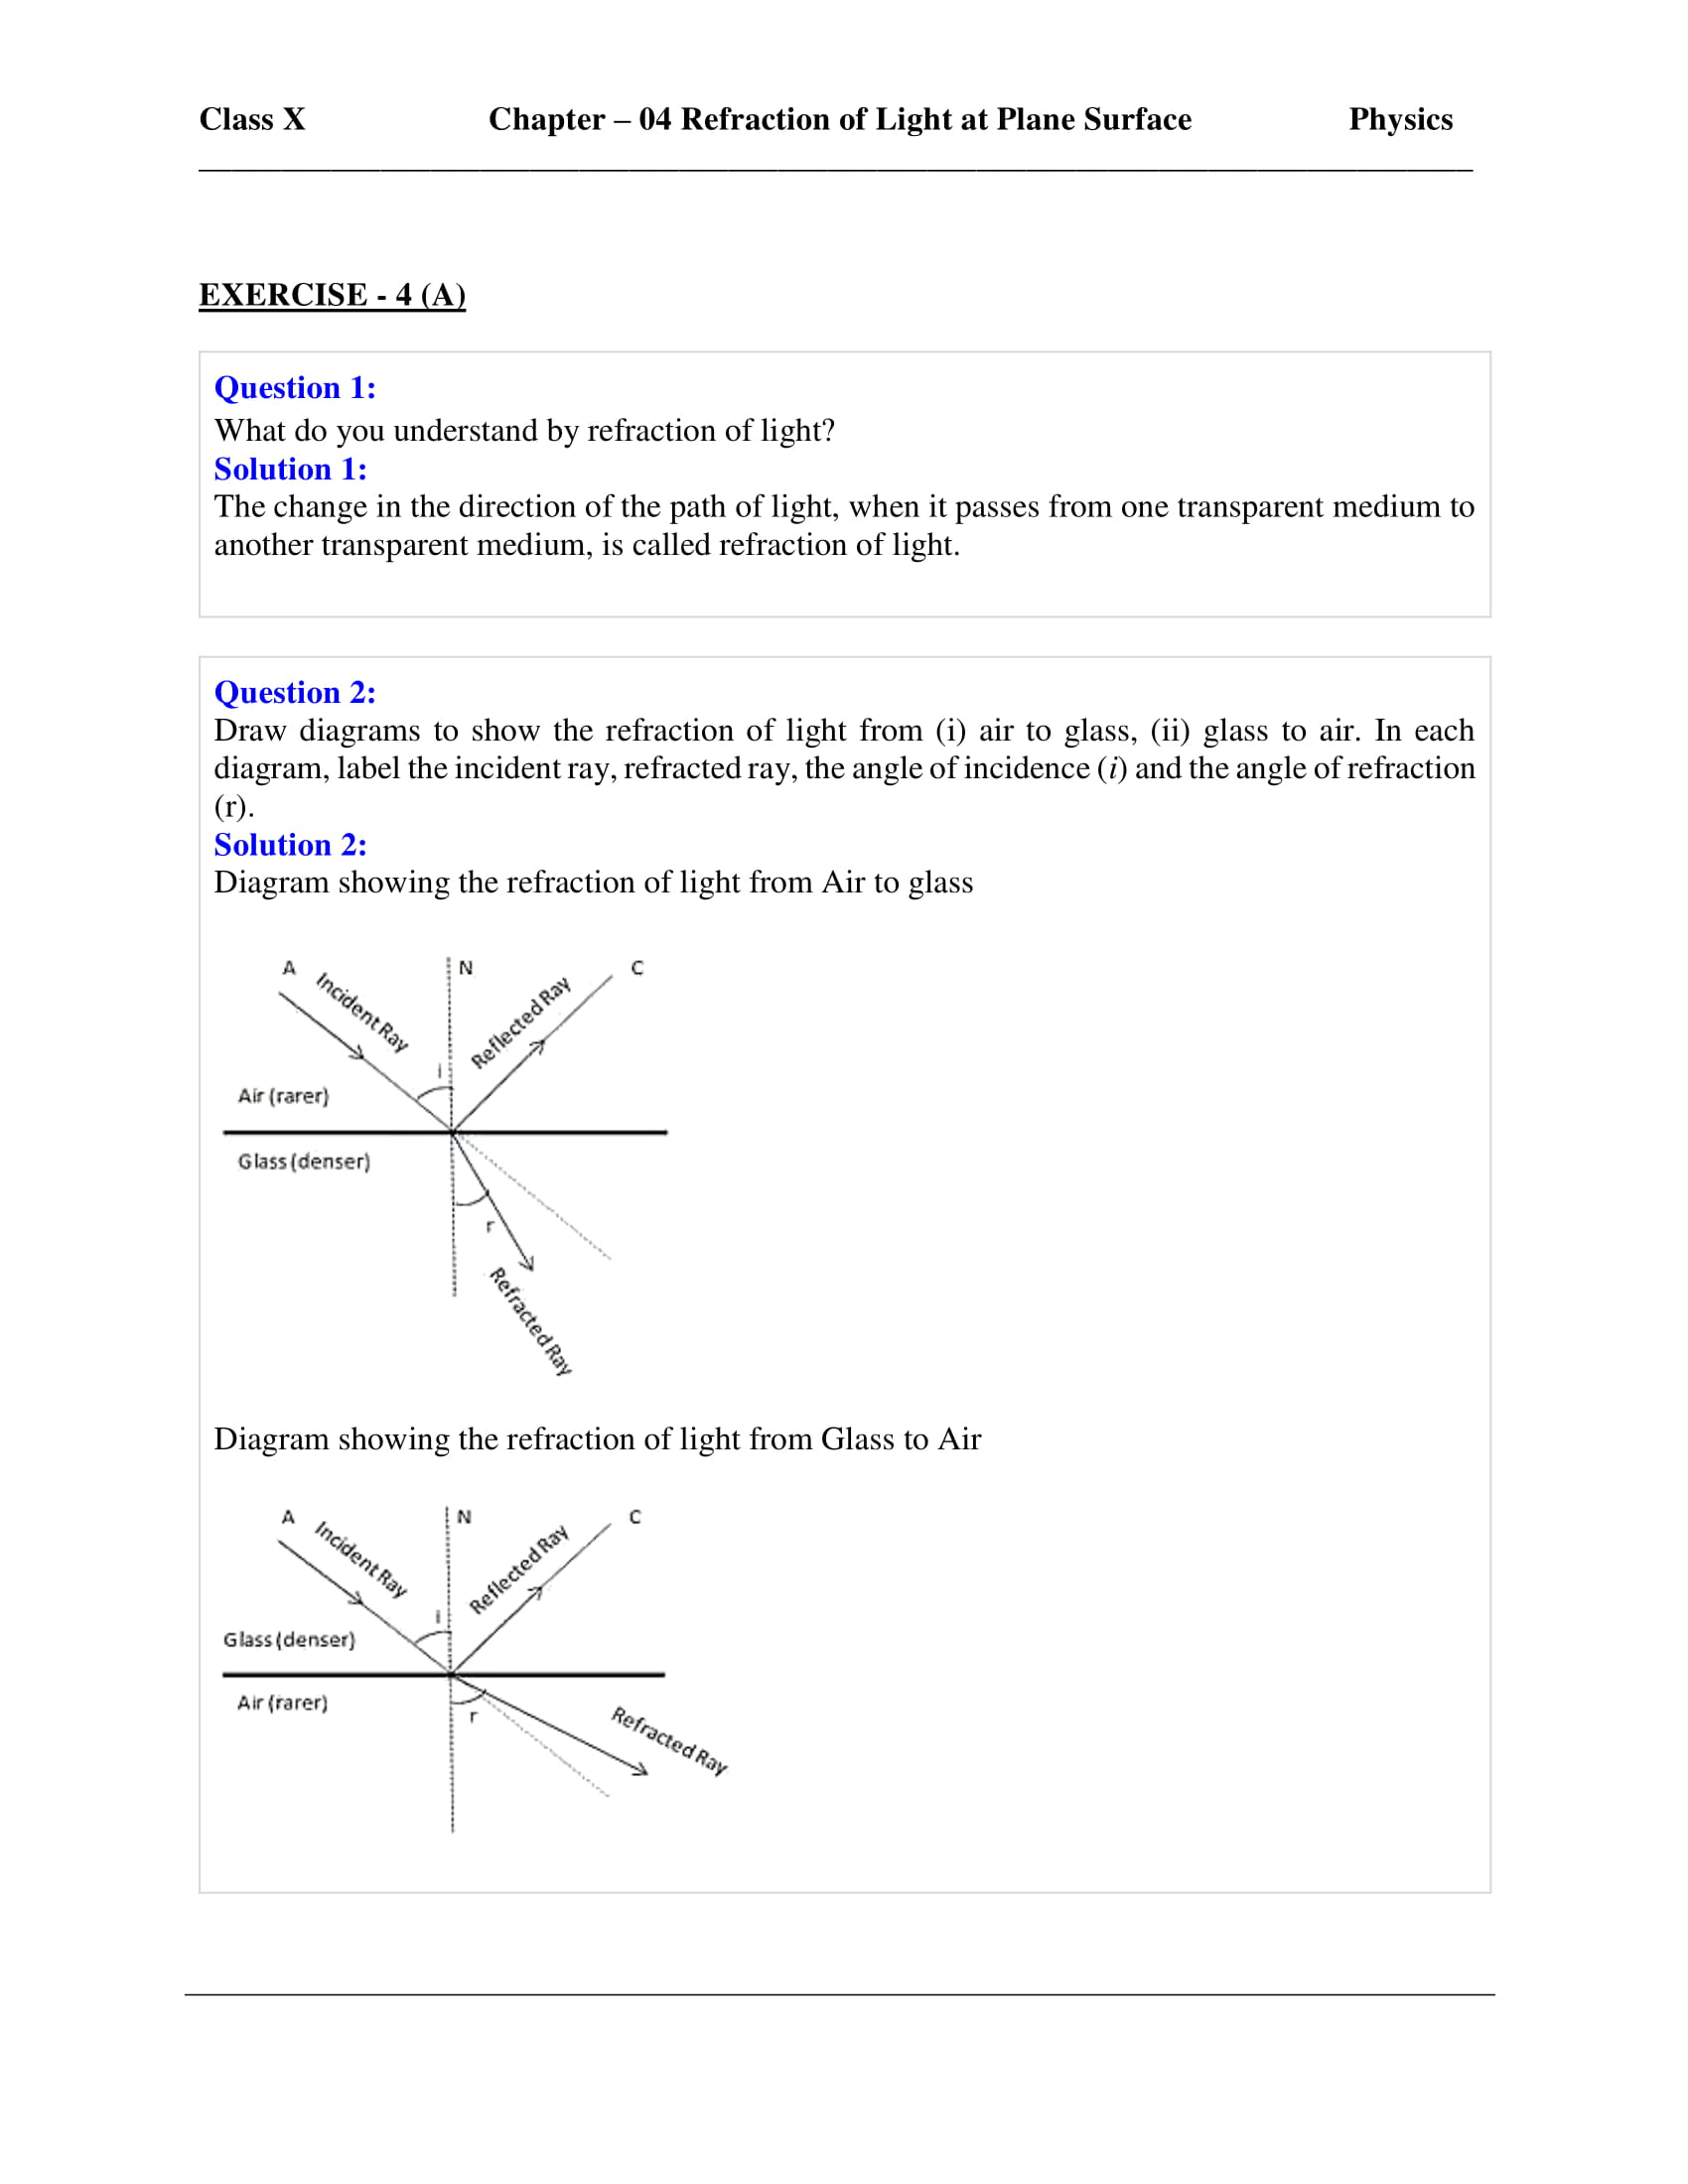 icse-selina-physics-solutions-class-10-chapter-4-refraction-of-light-at-plane-surfaces-01